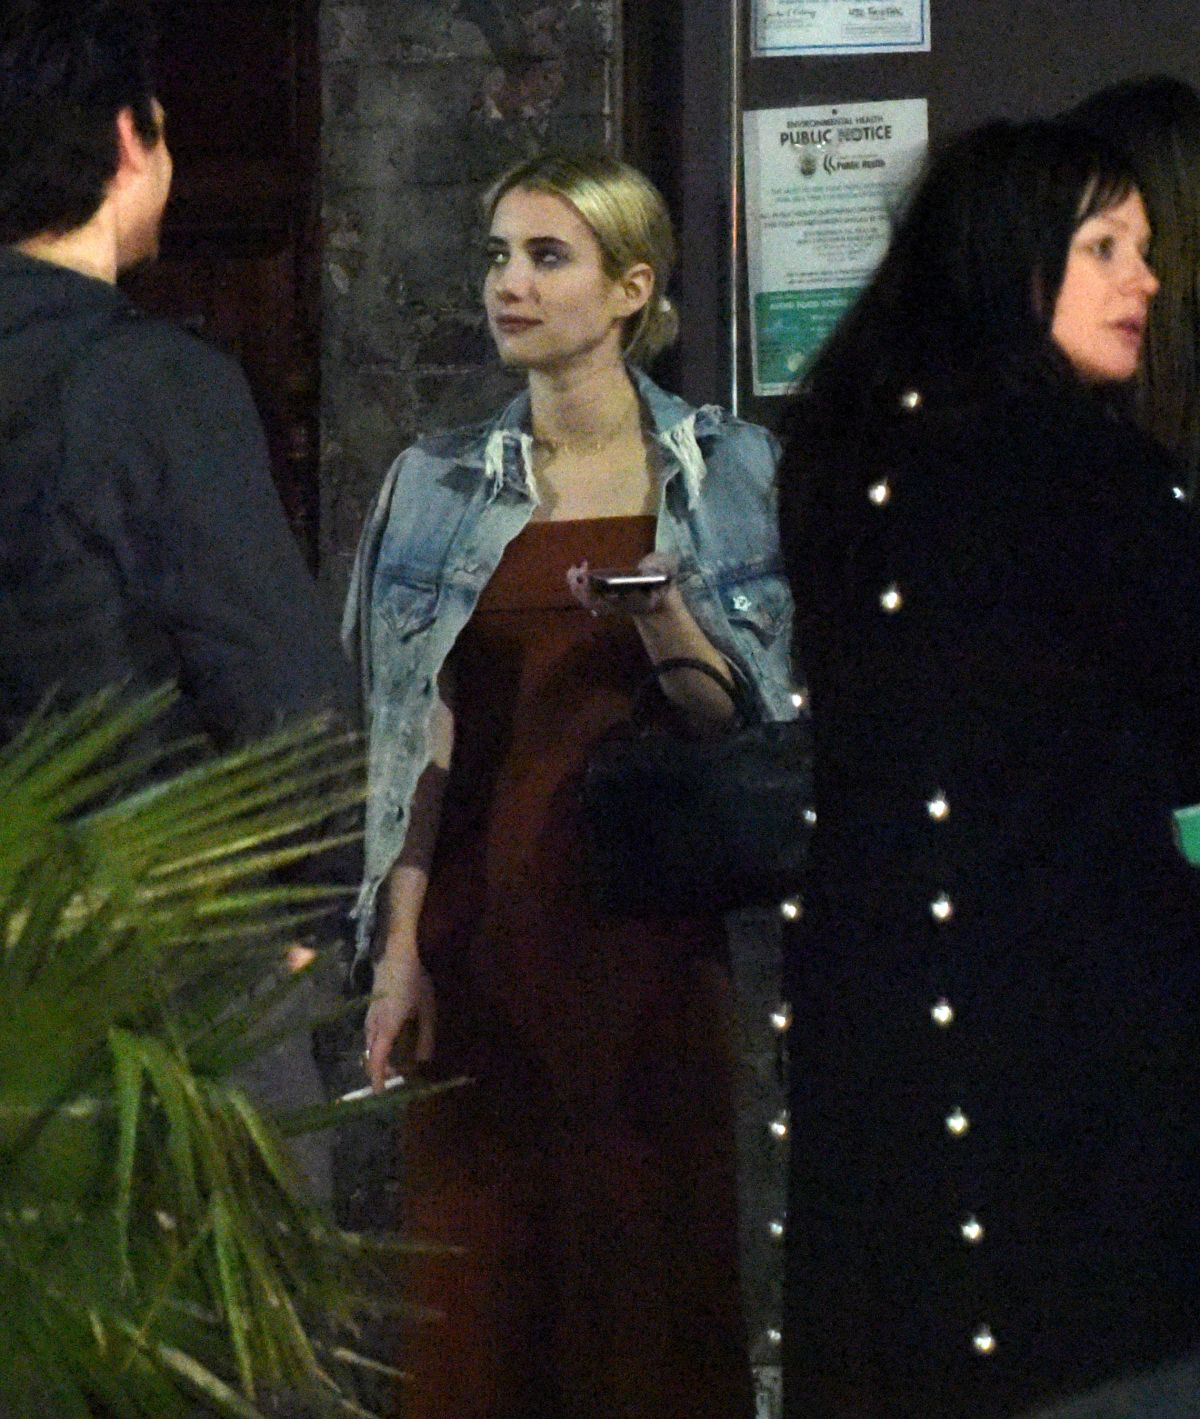 image Emma roberts and friends in hotel lobby